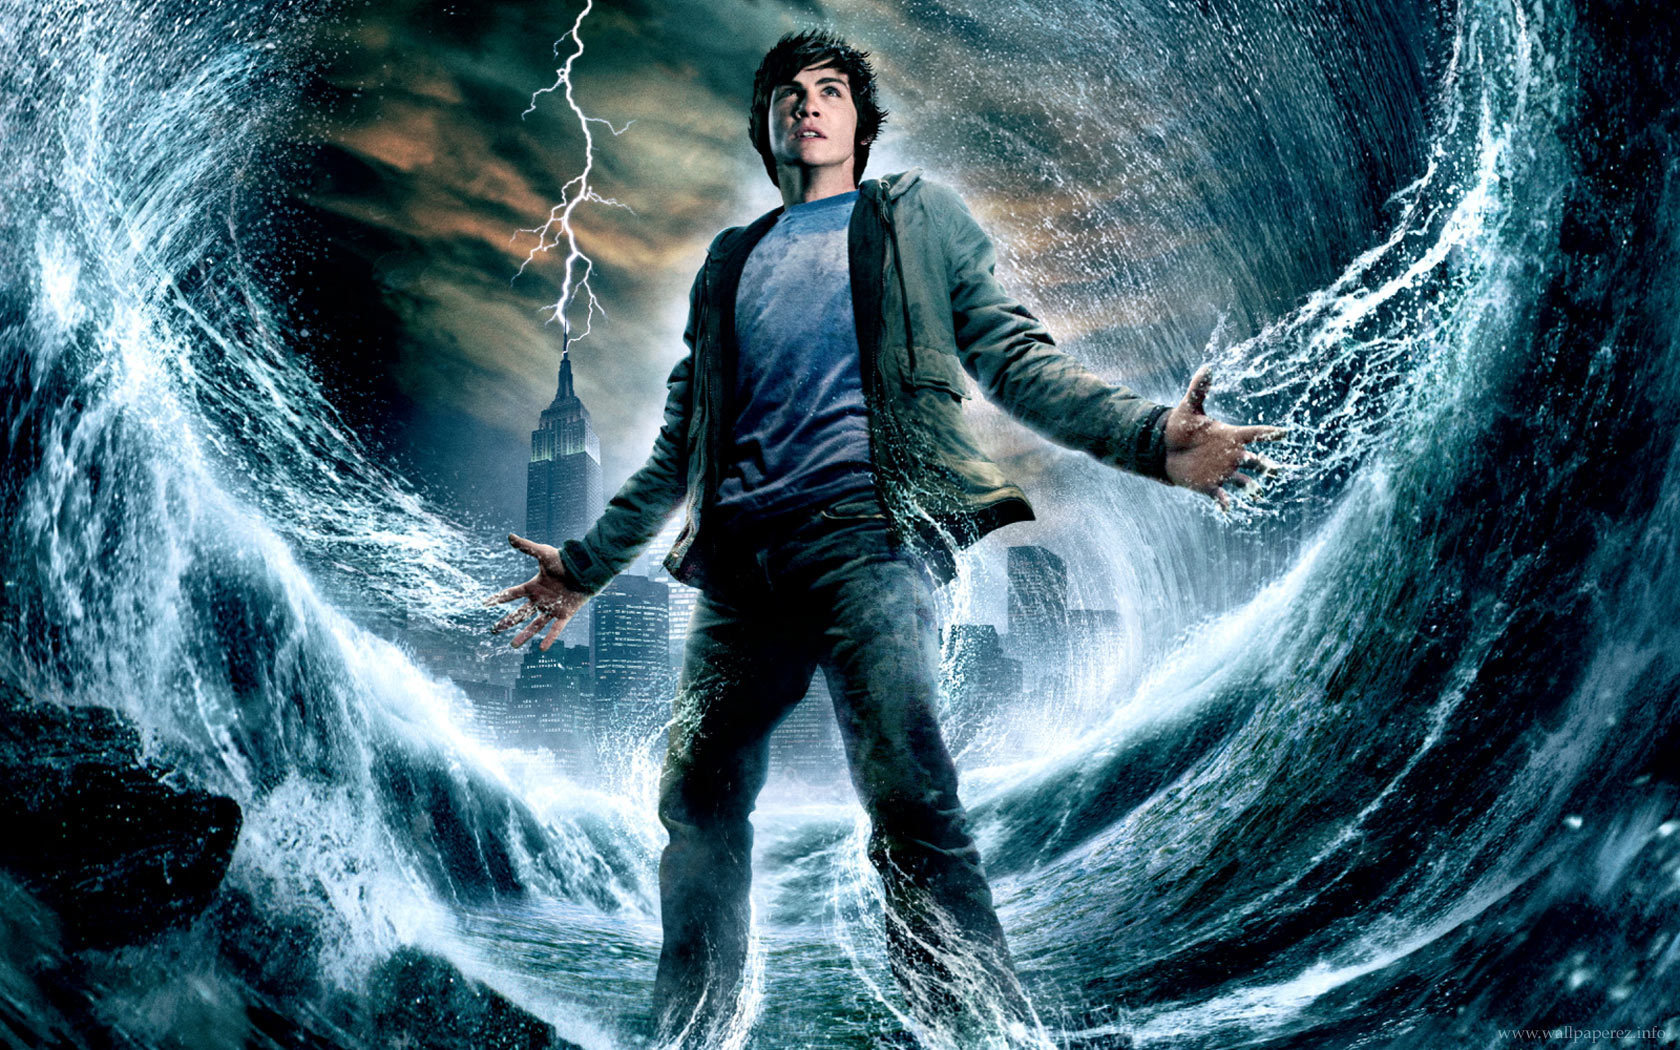 Logan lerman logan as percy jackson